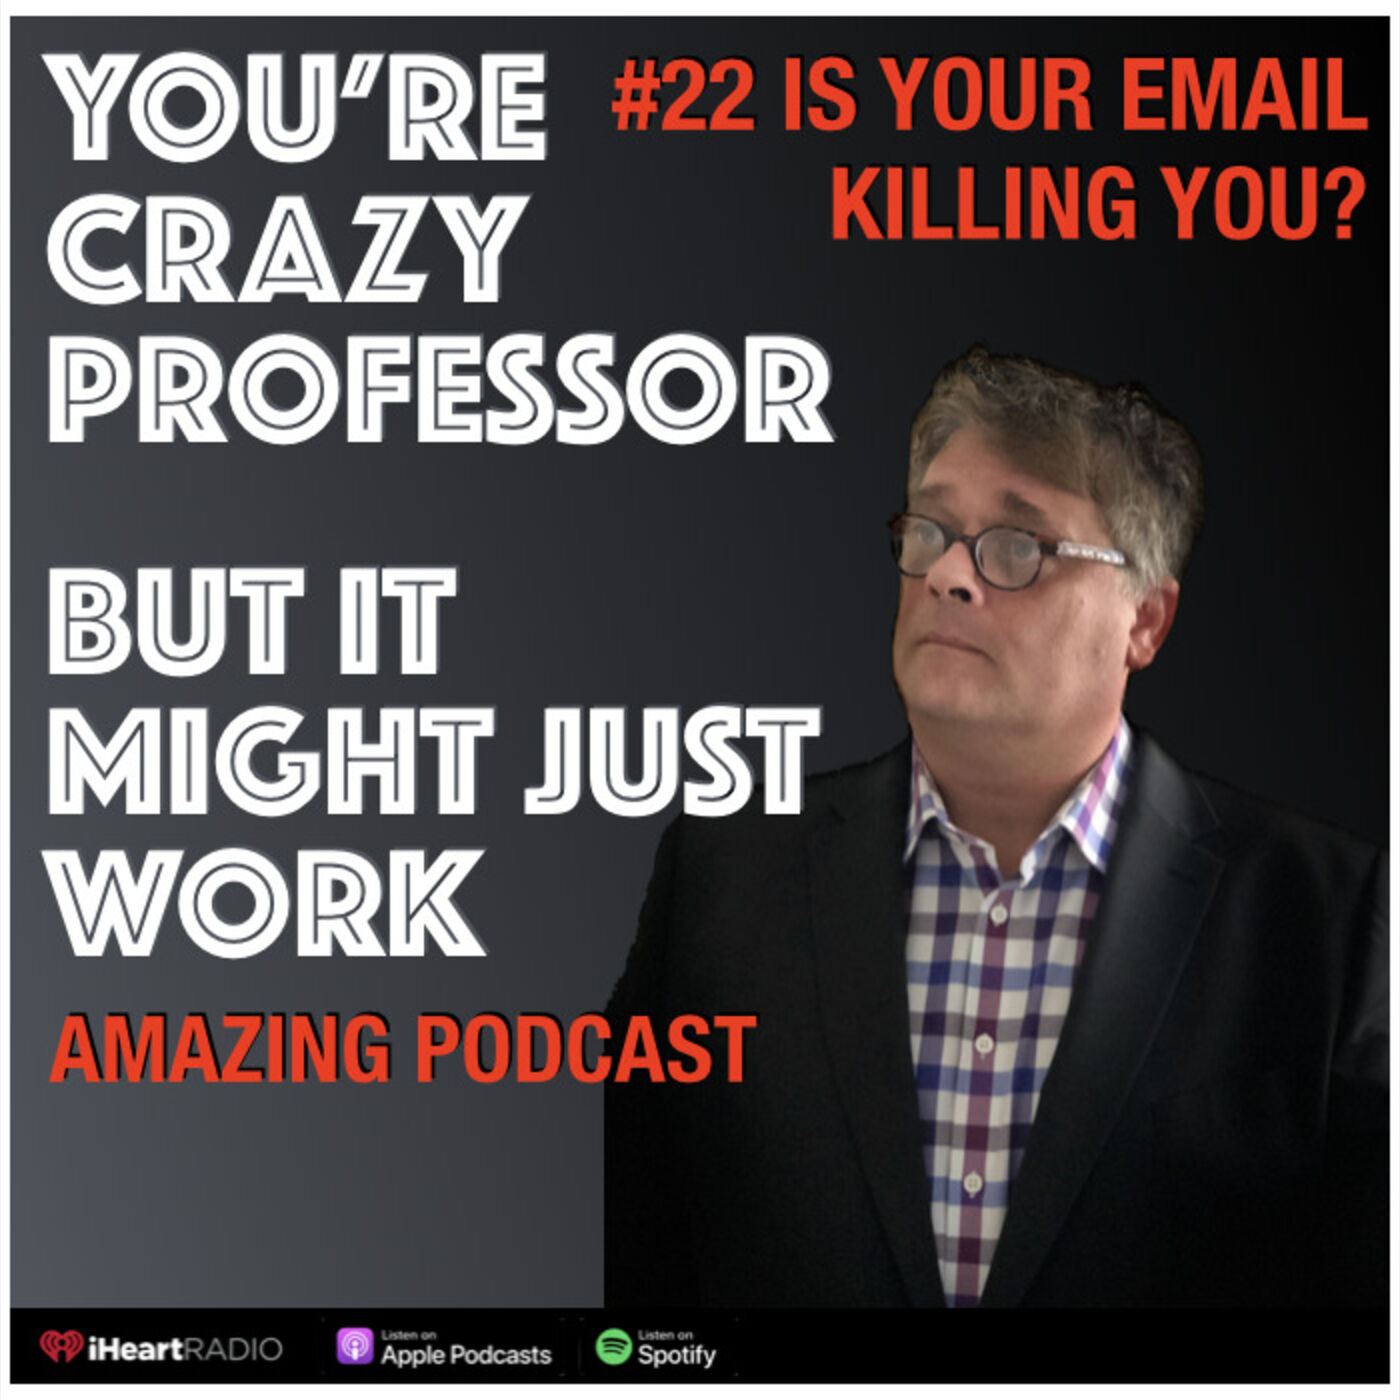 Is Your Email Killing You?